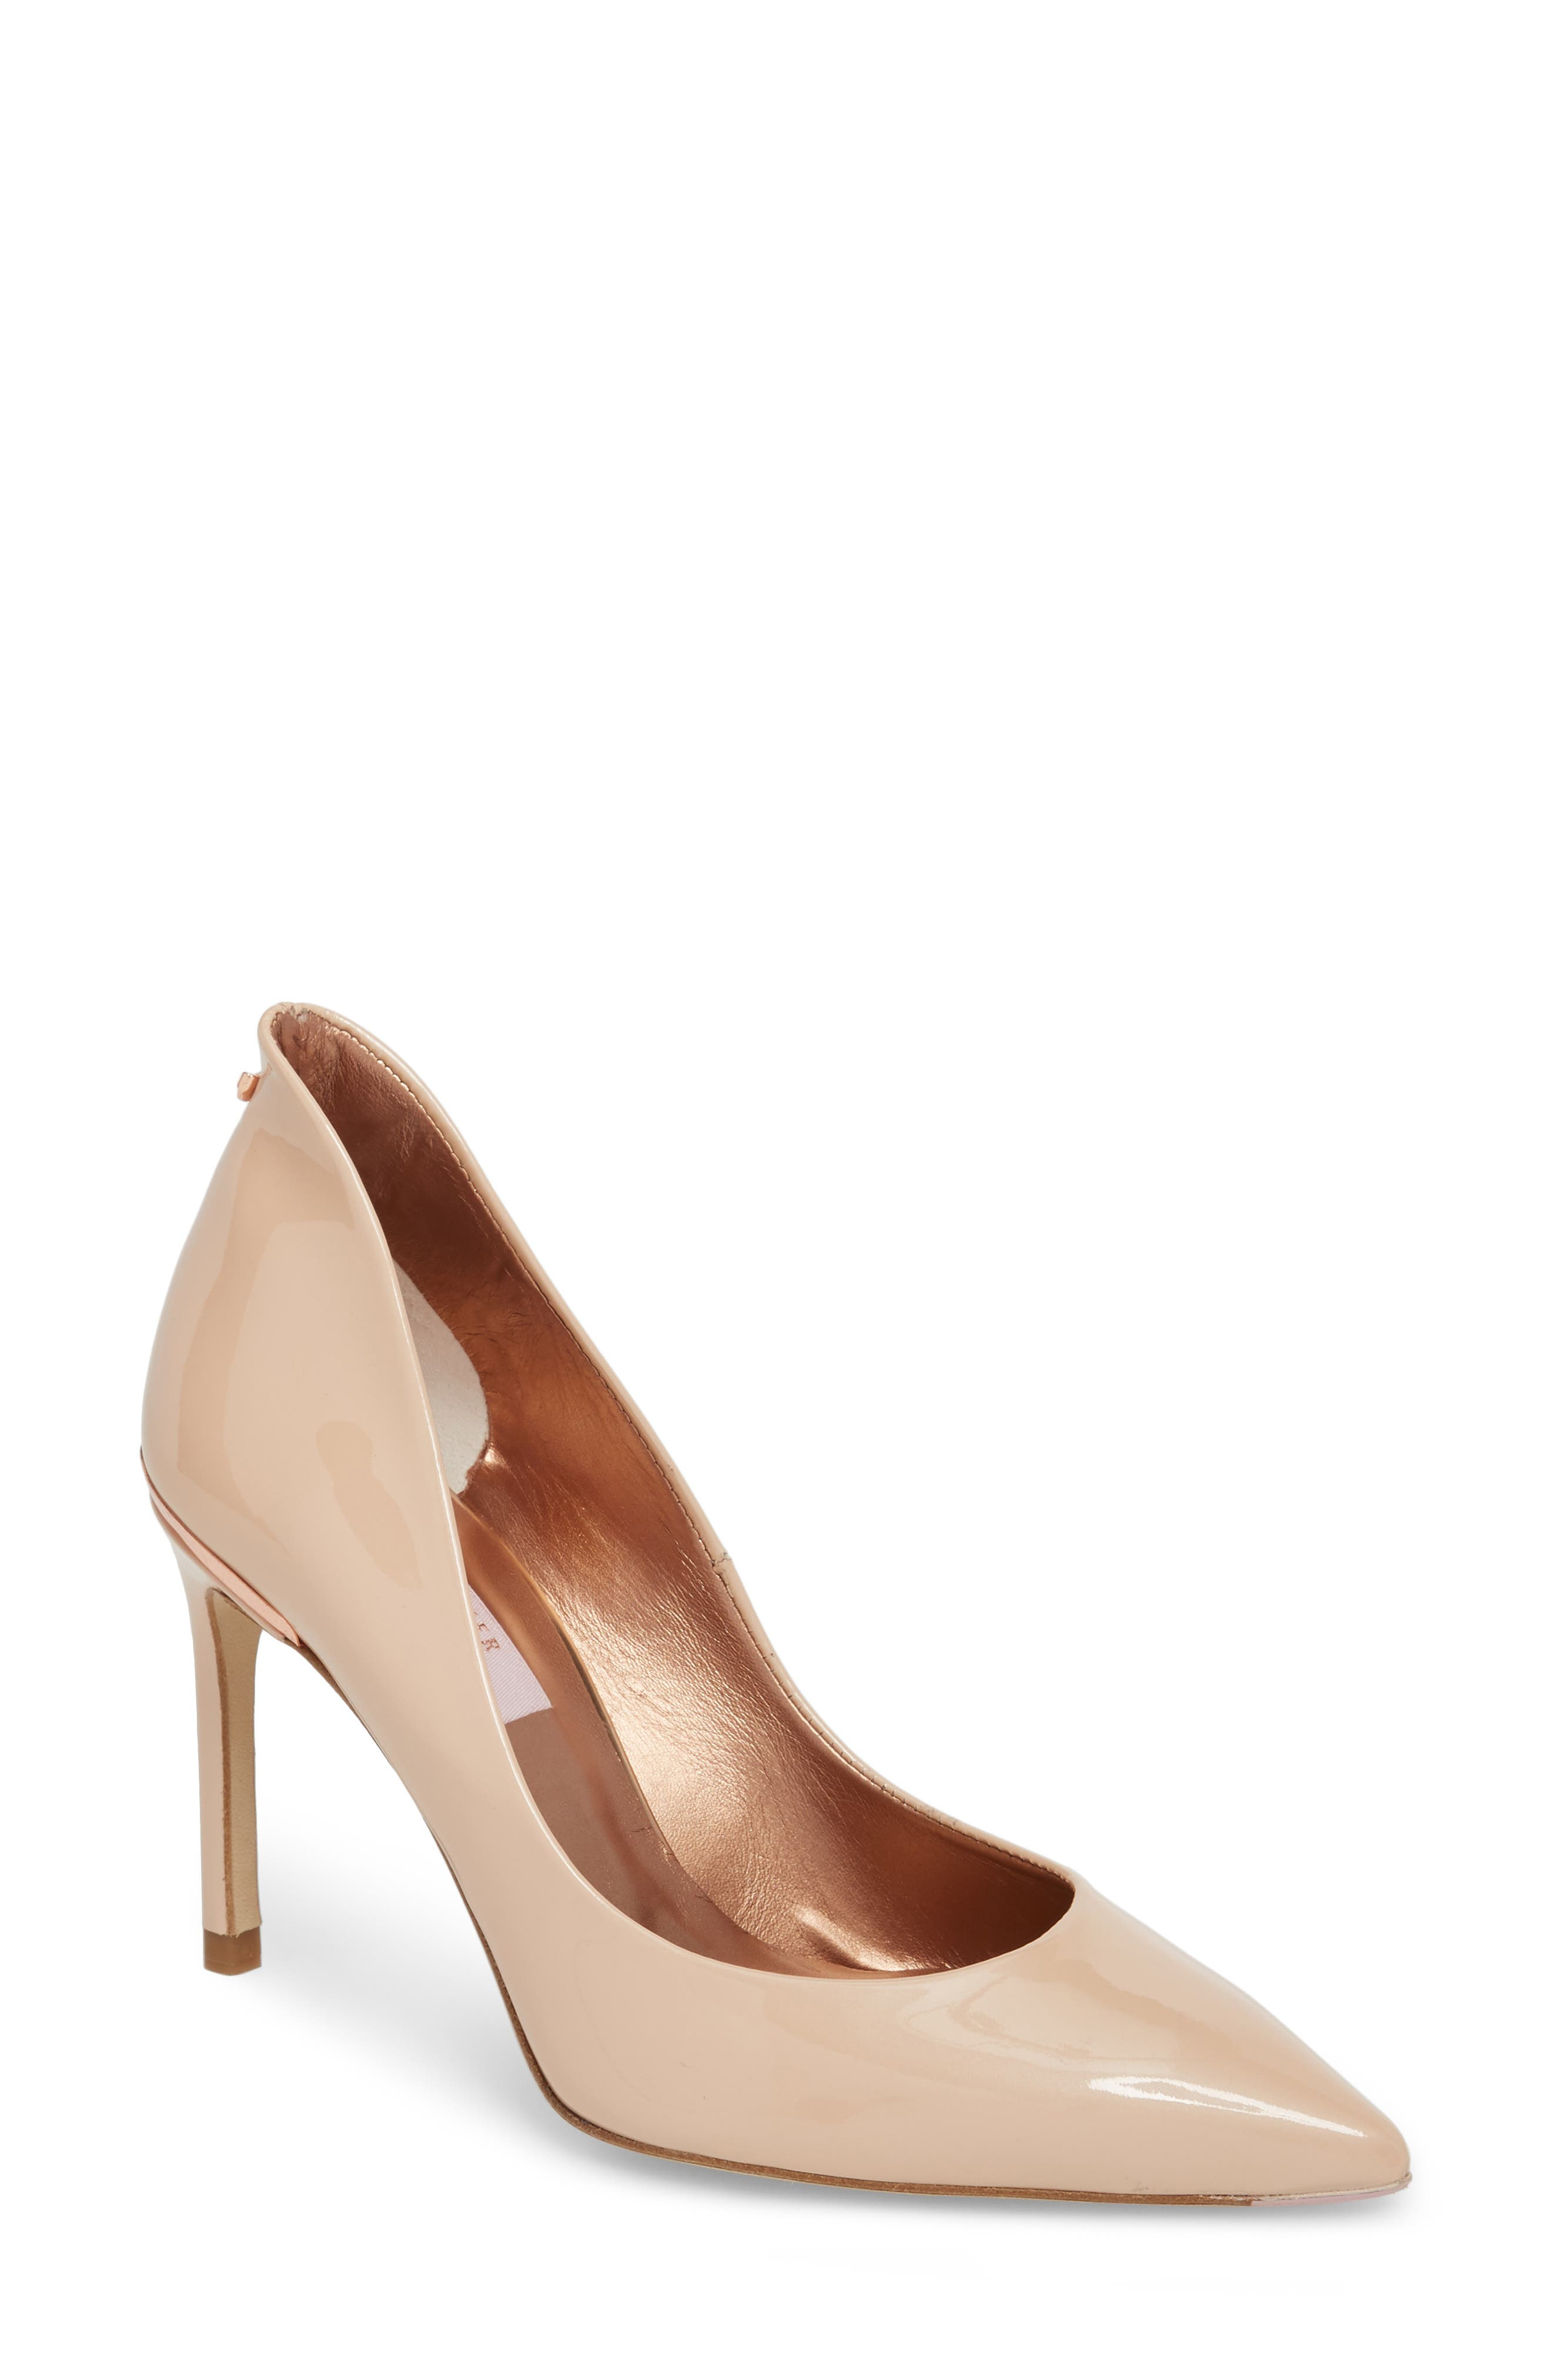 Savio Pump,                             Main thumbnail 1, color,                             NUDE PATENT LEATHER